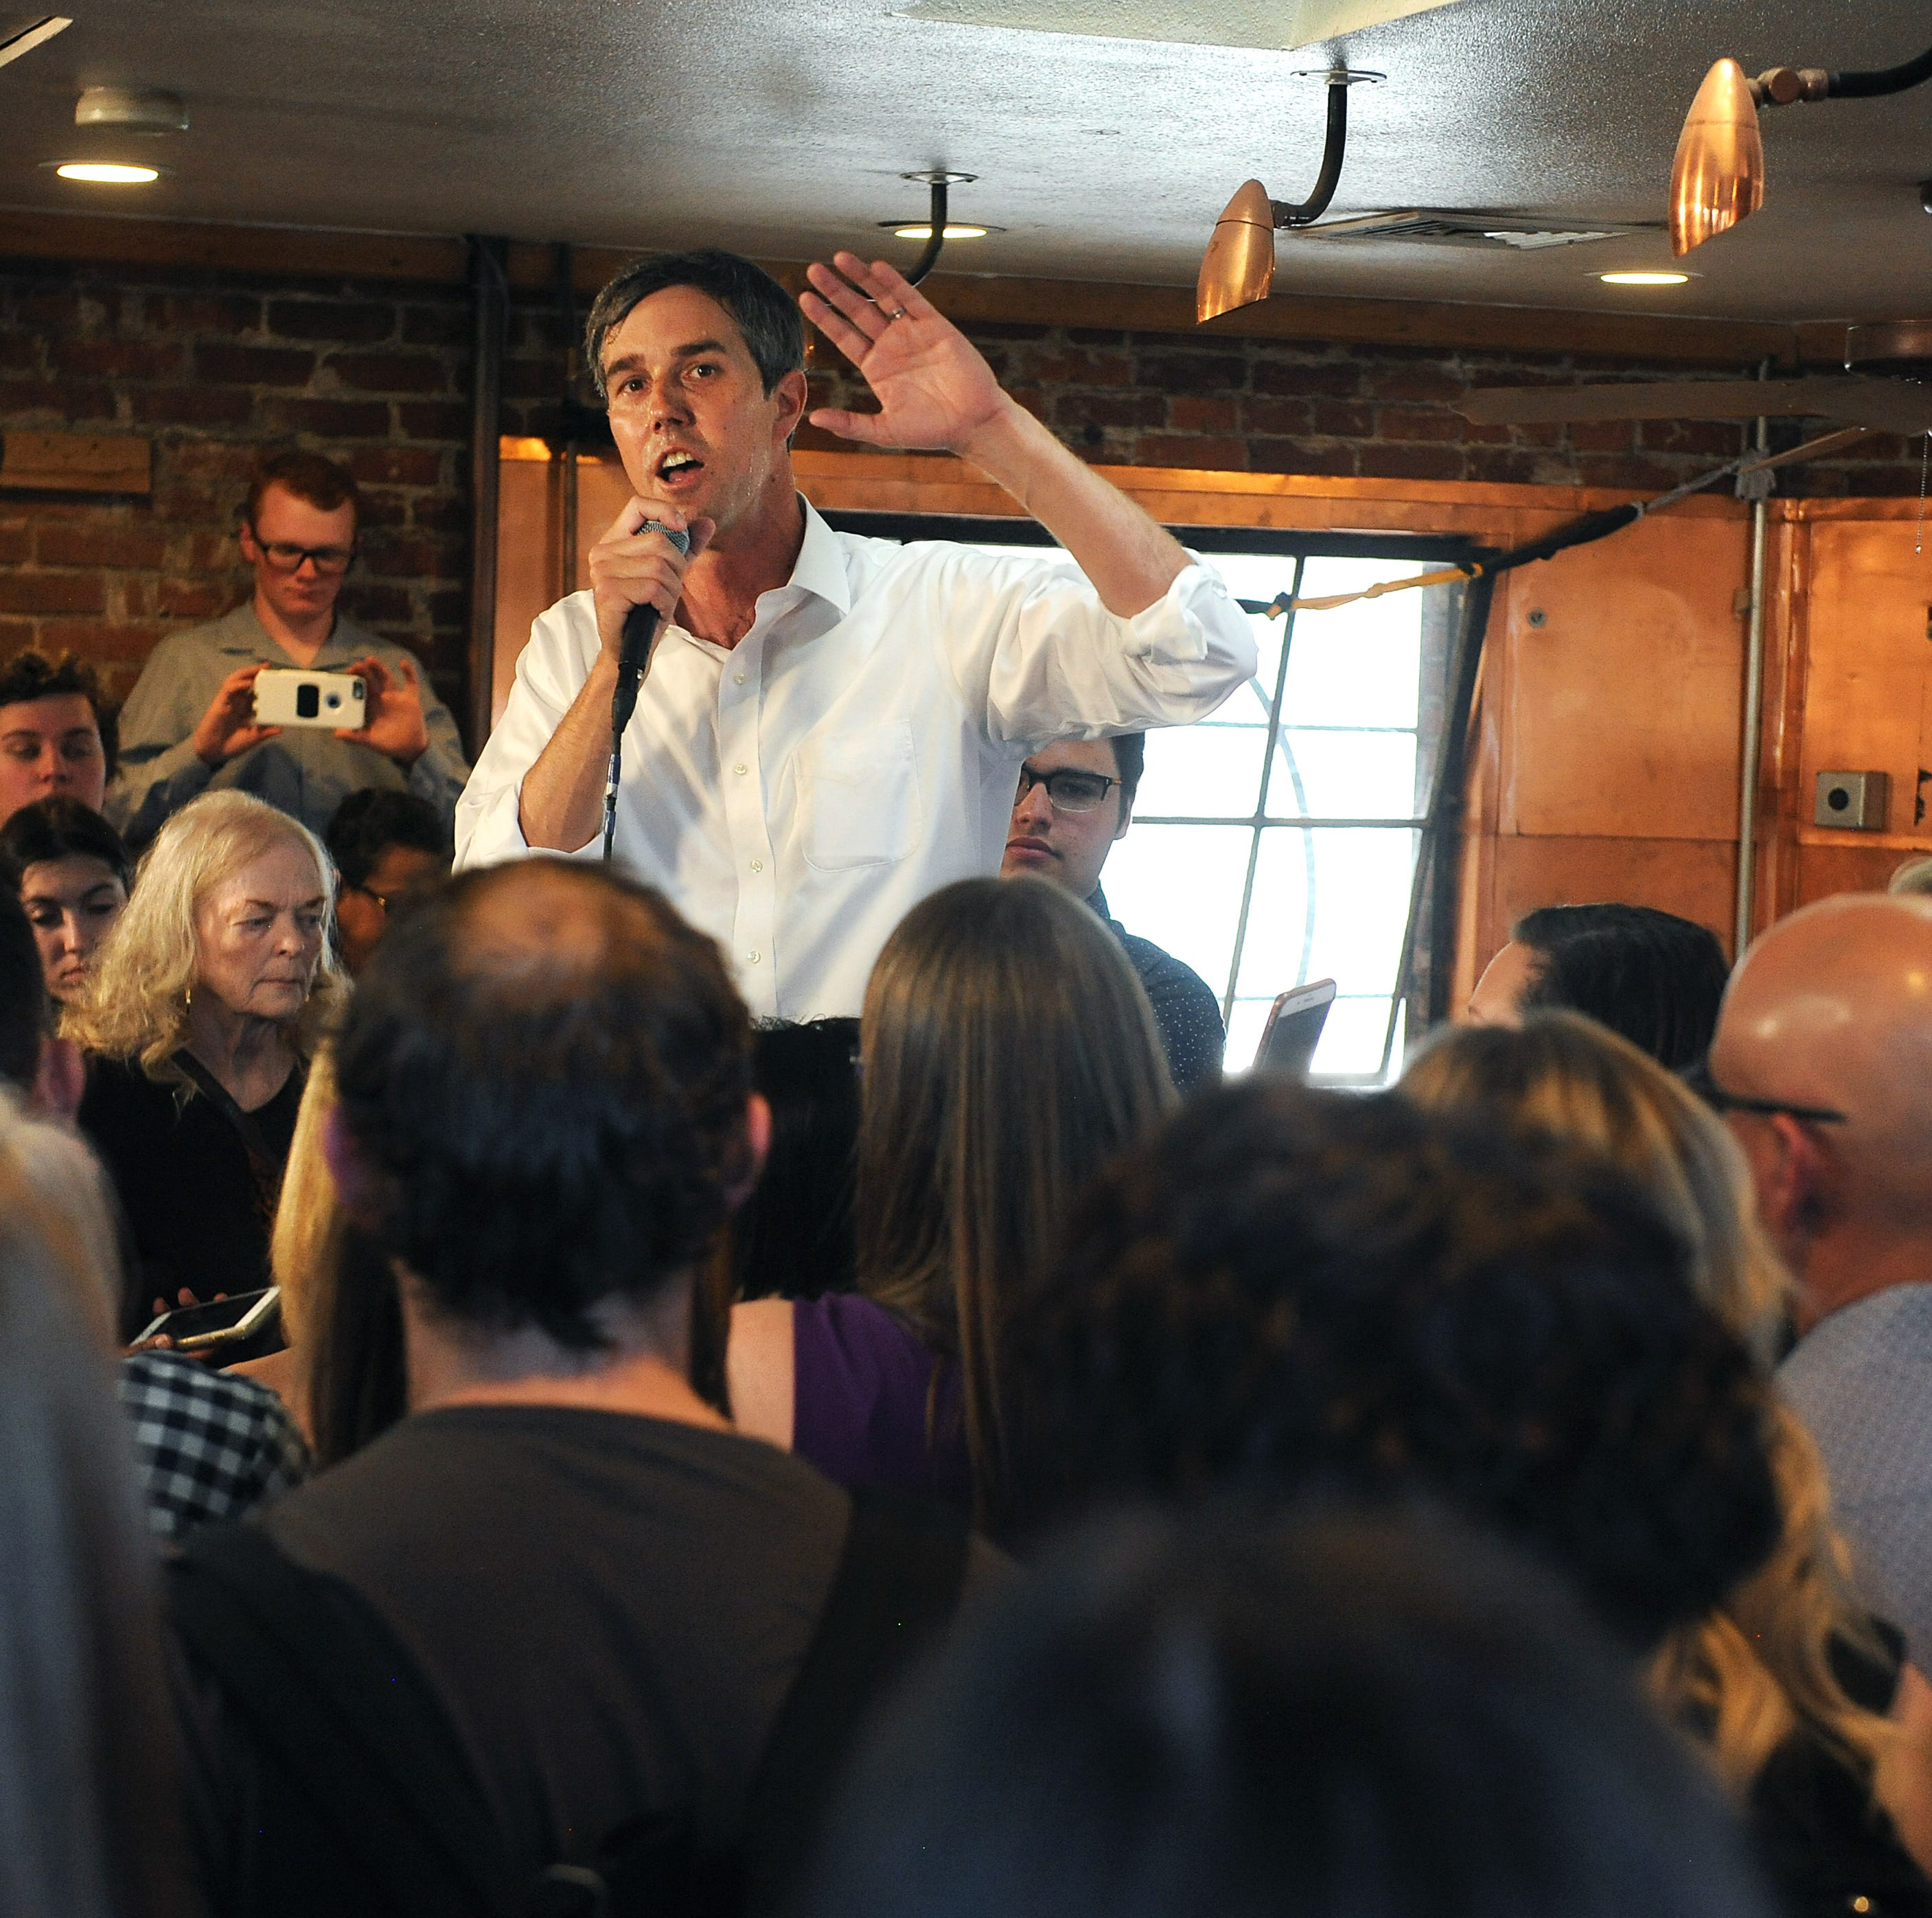 2020 Democratic presidential contender Beto O'Rourke stumps in Northern Nevada on Thursday